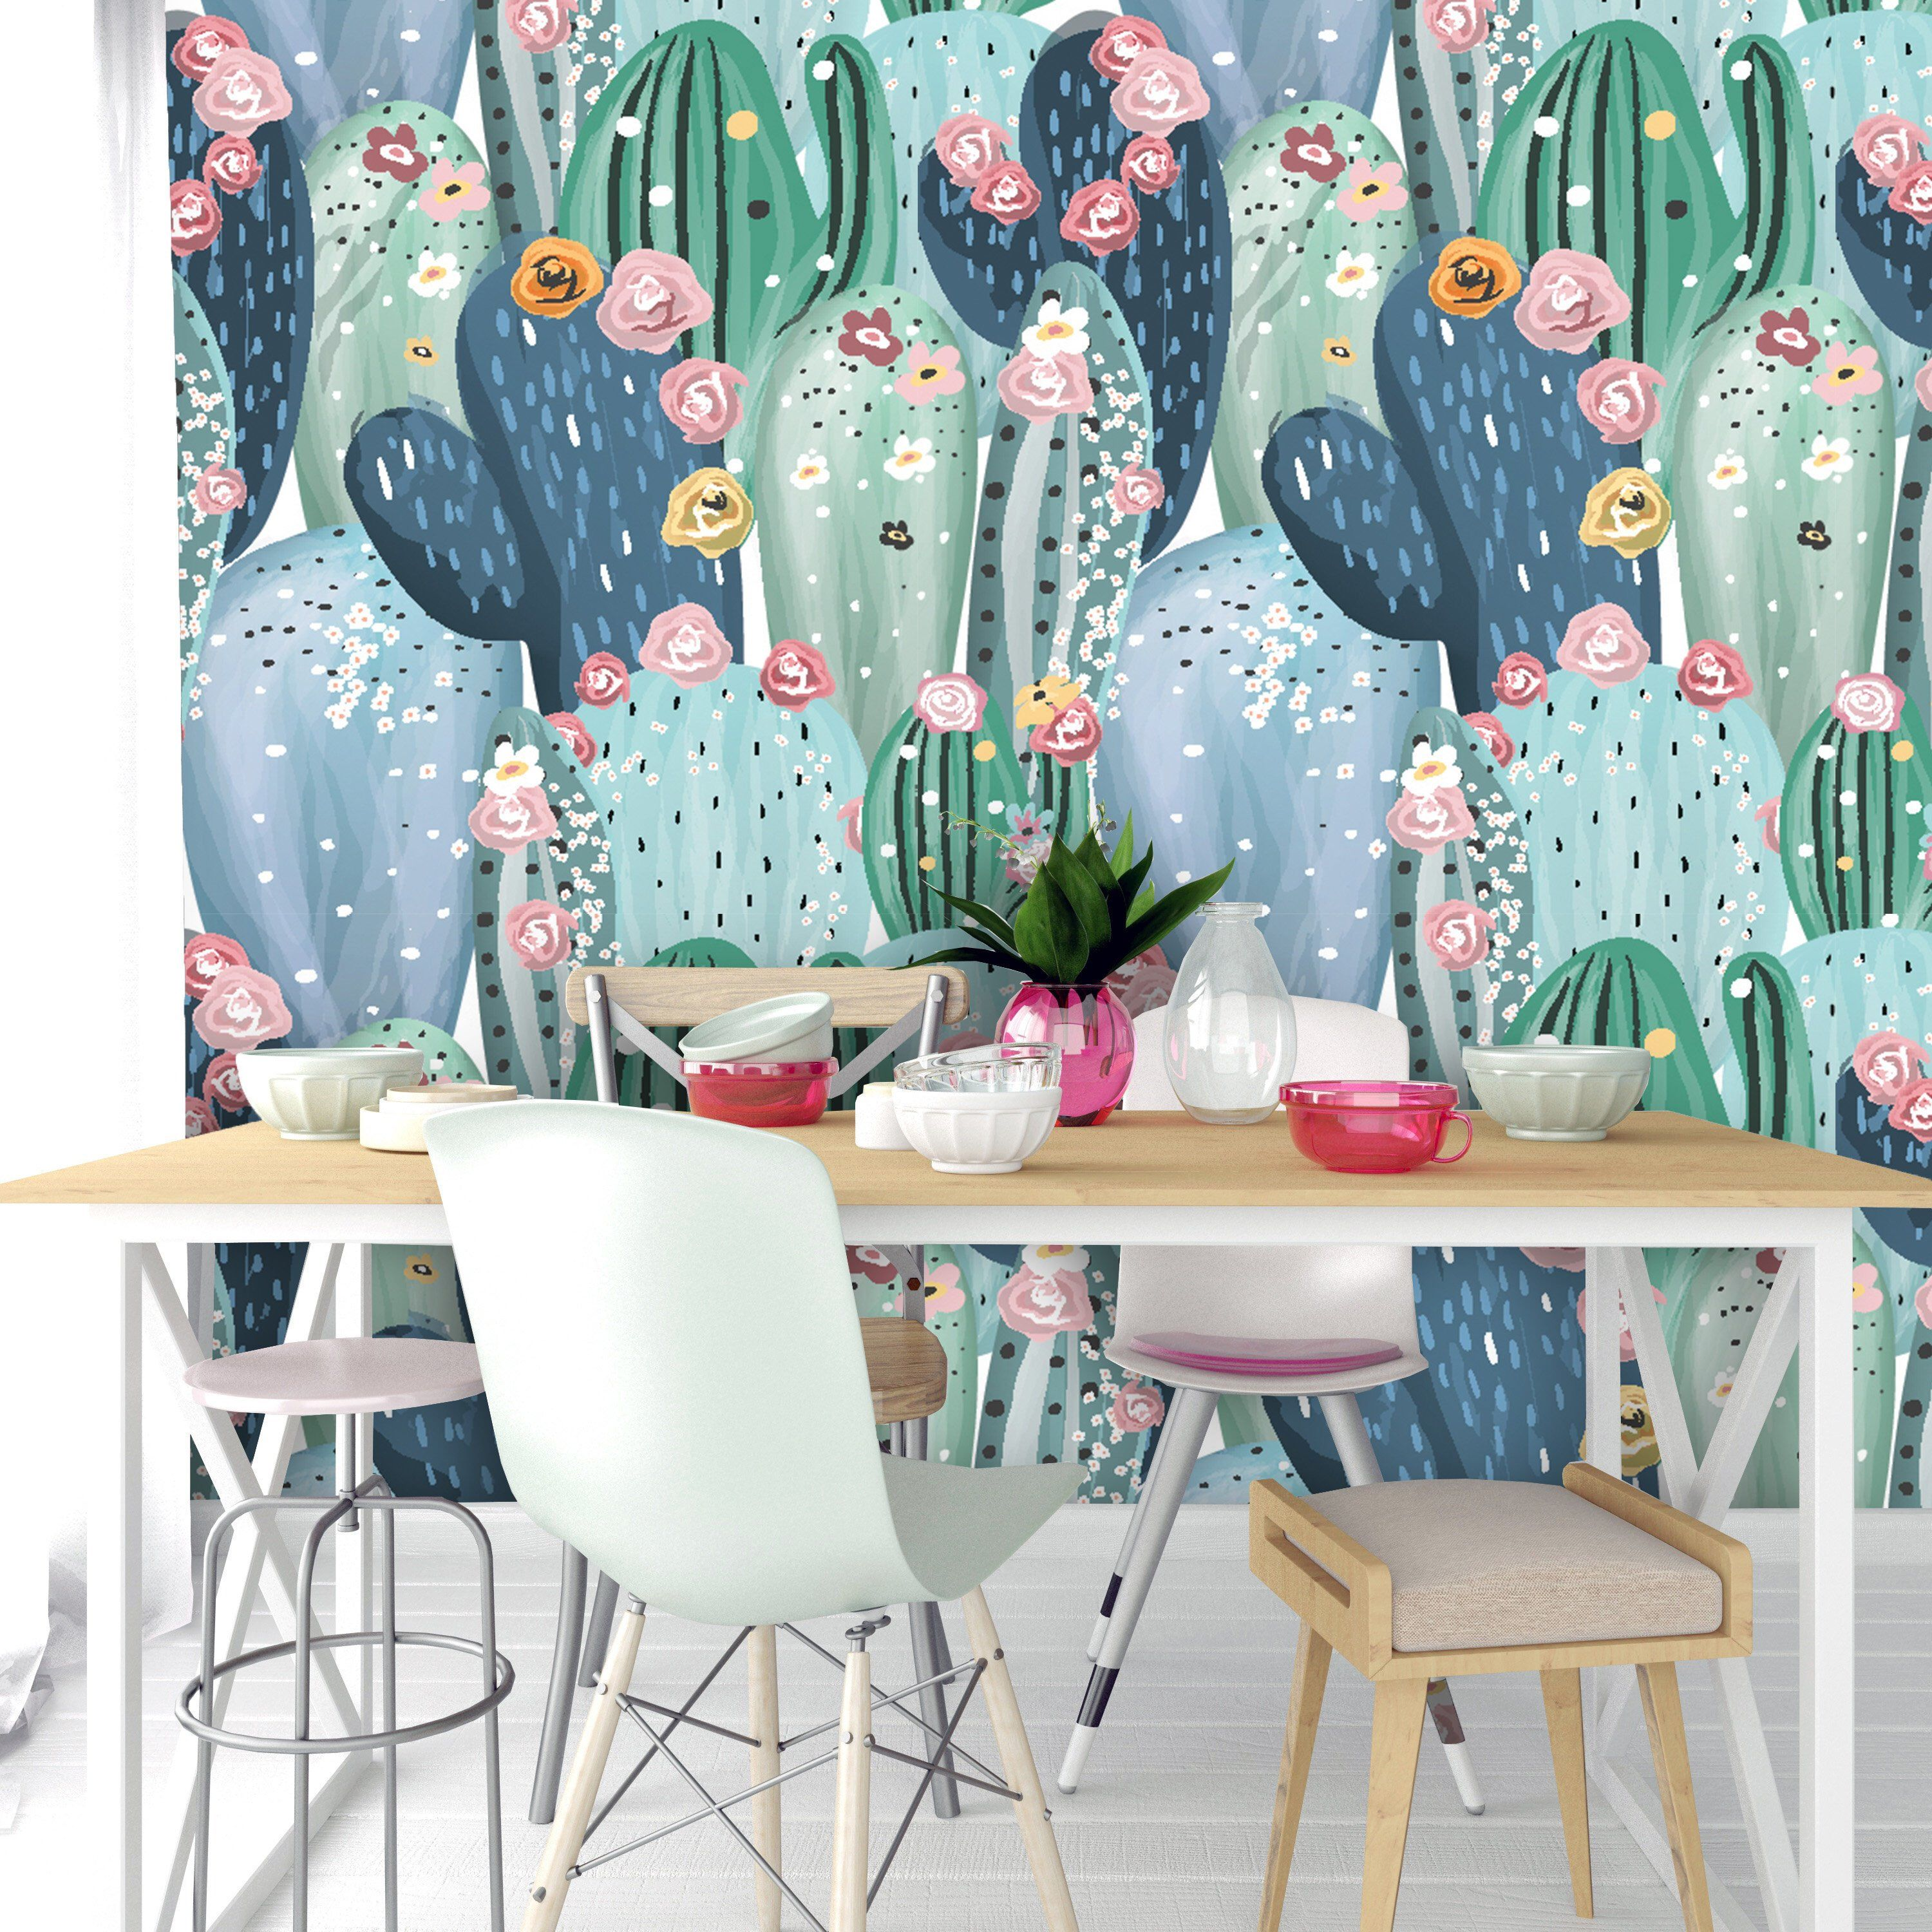 Removable Peel 'n Stick Wallpaper, Self-Adhesive Accent Wall Mural, Watercolor Tropical Pattern, Nursery Baby's Room Decor • Green Cactus #tropicalpattern